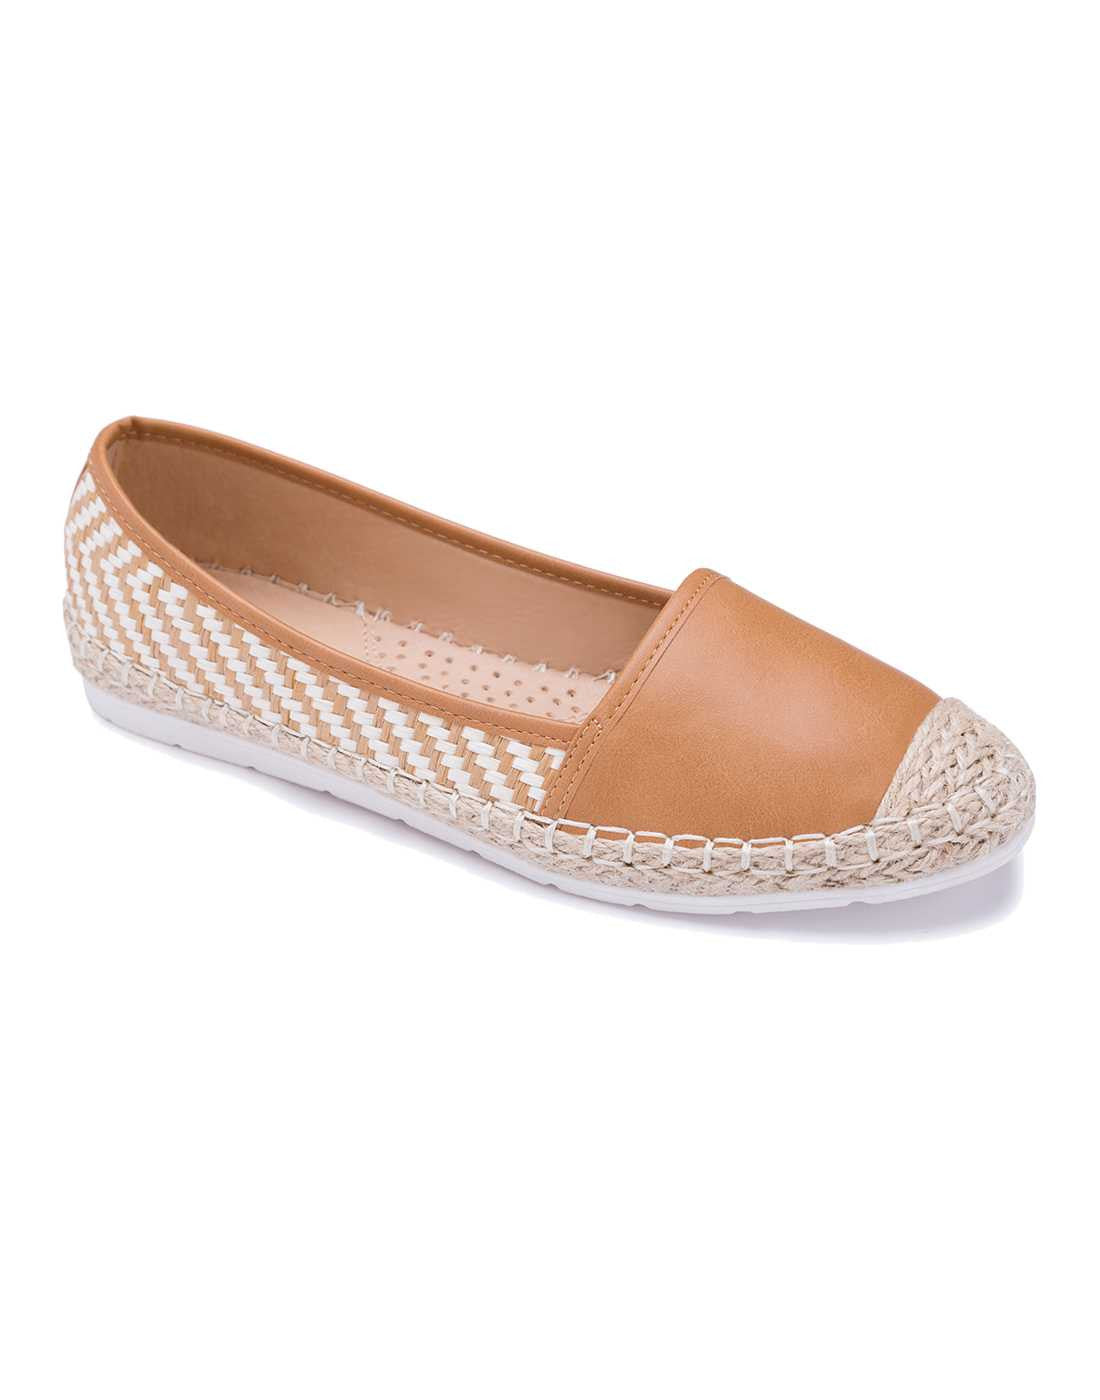 Brown Cap Toe Espadrille